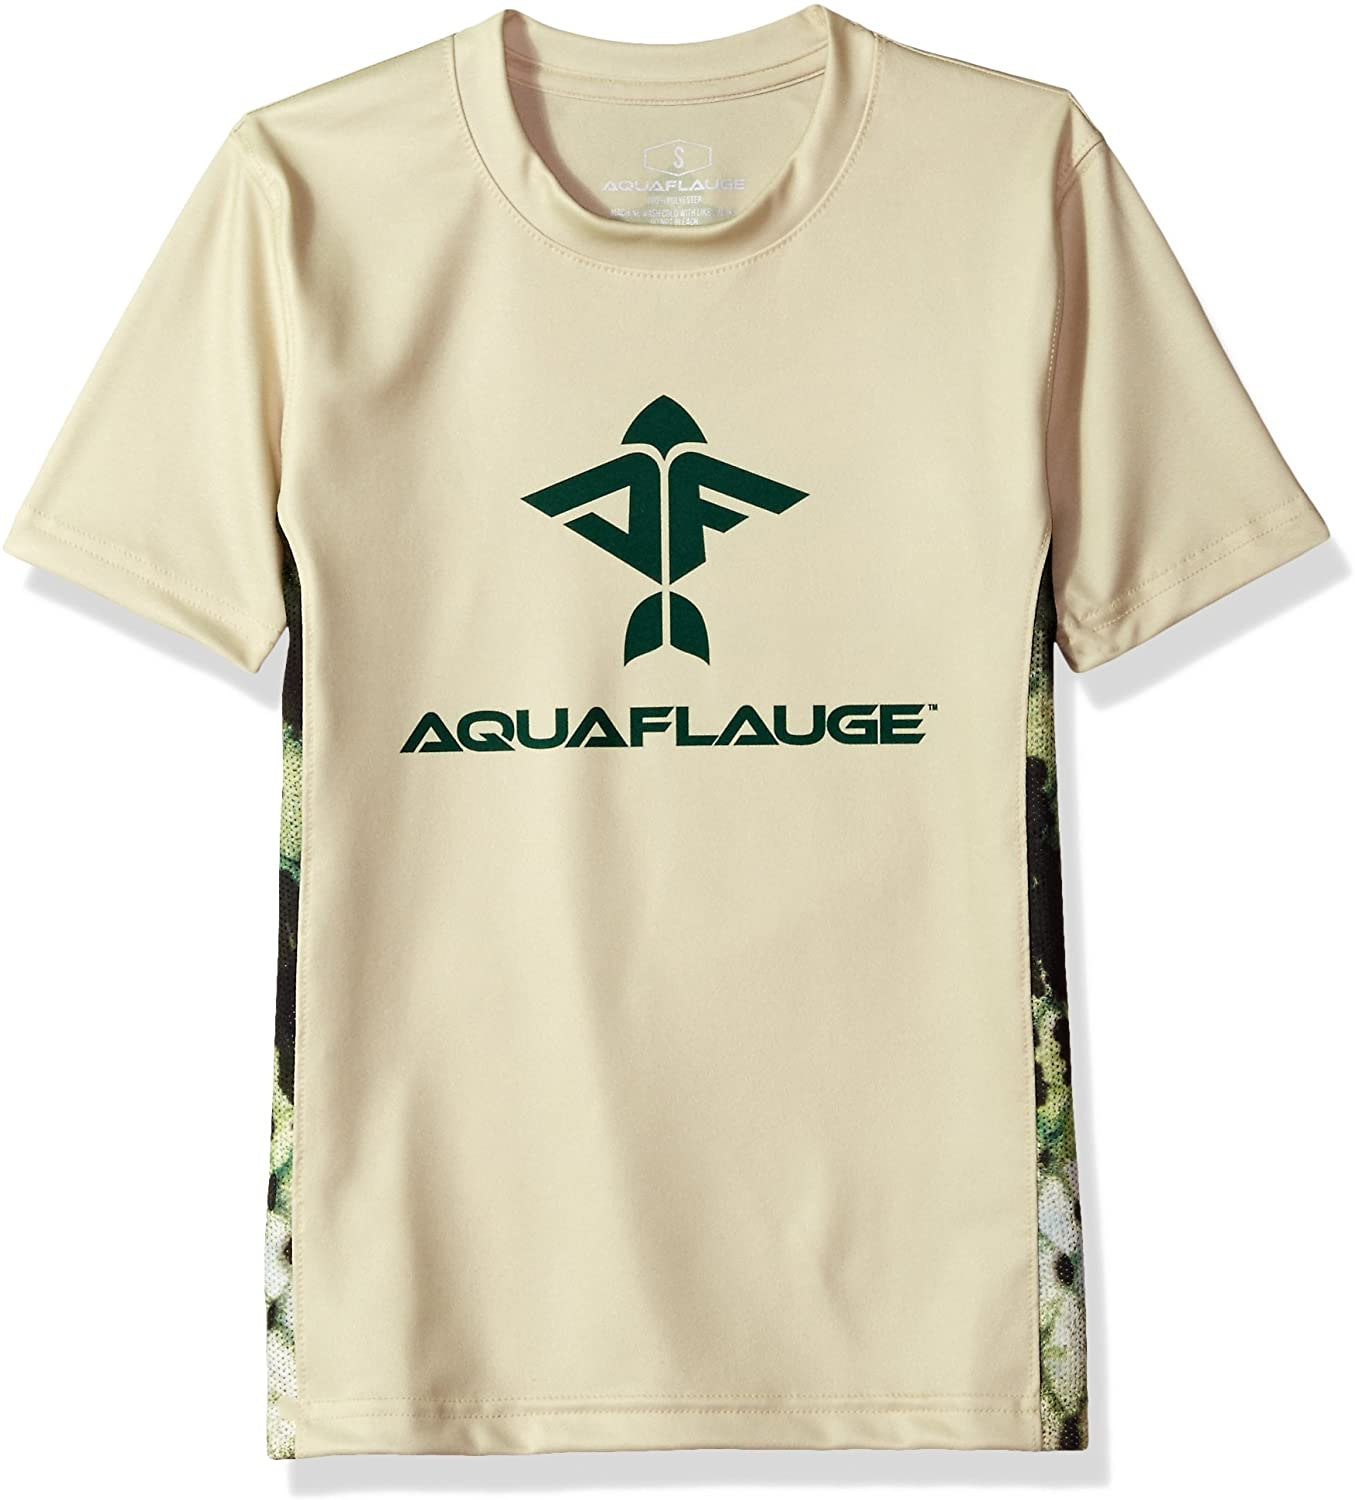 AquaFlauge Boys' Youth s/s 100% Performance Poly mesh Inset tee